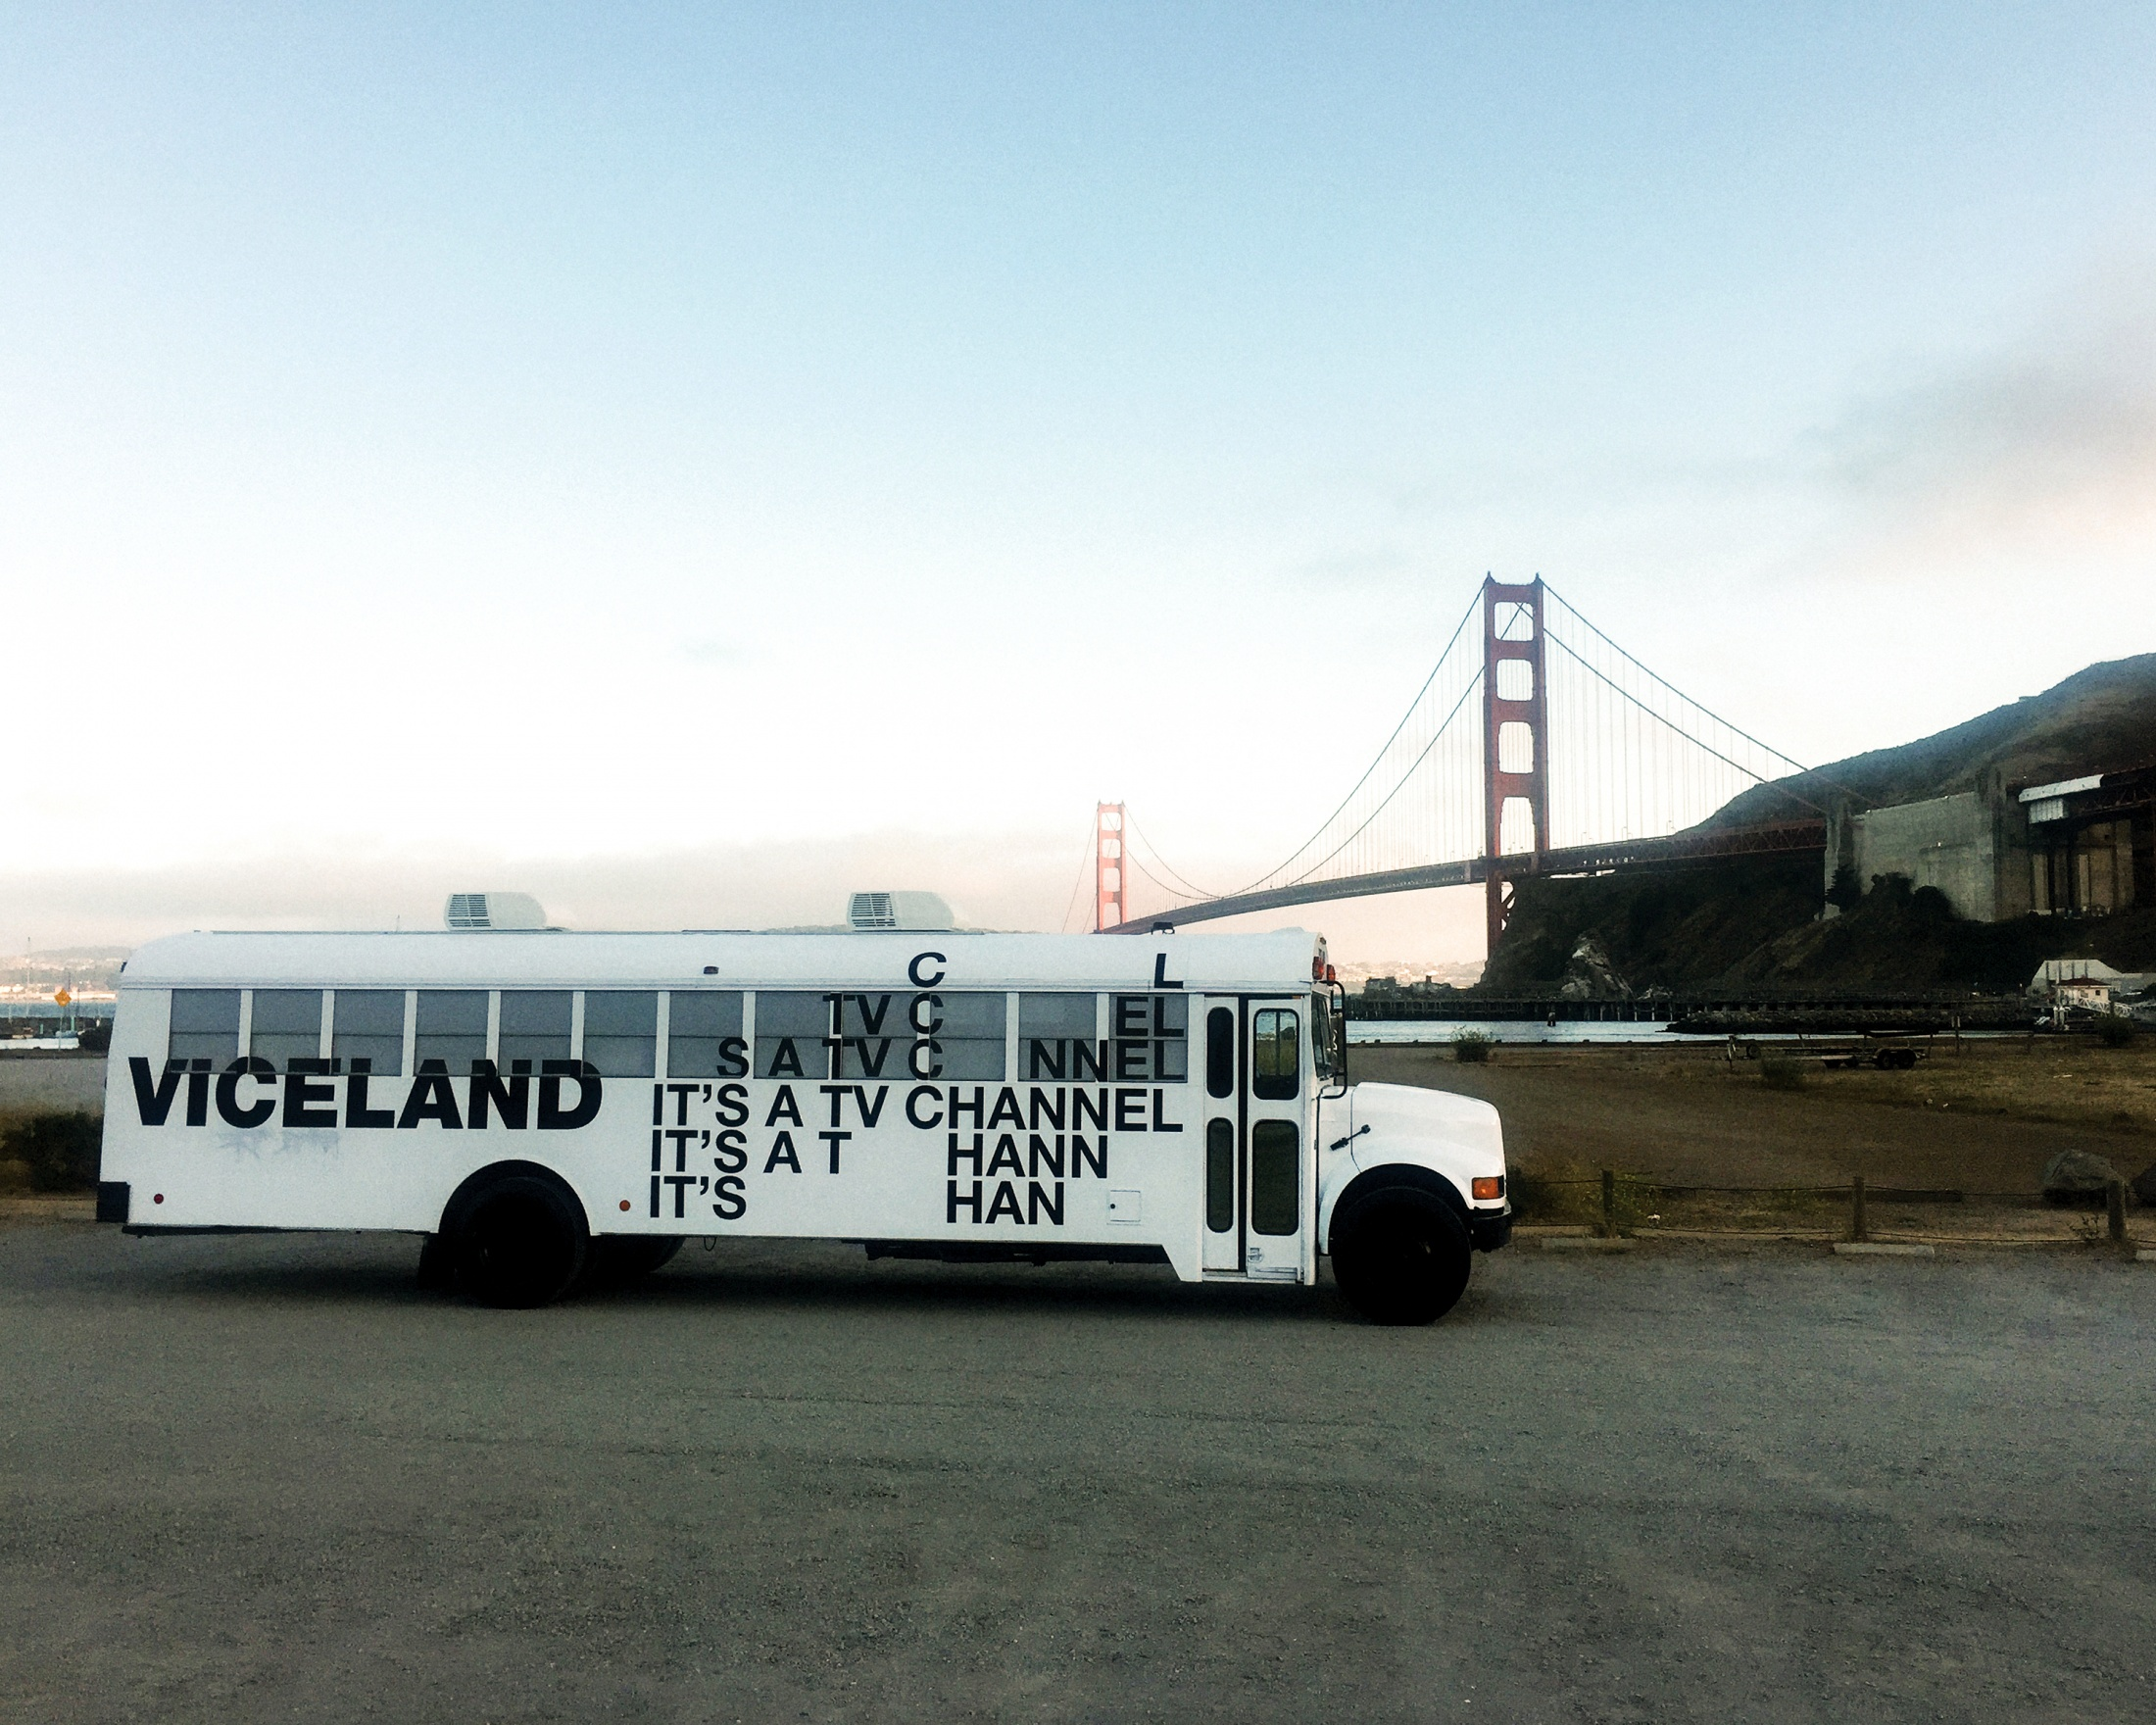 Thumbnail for Viceland BUS